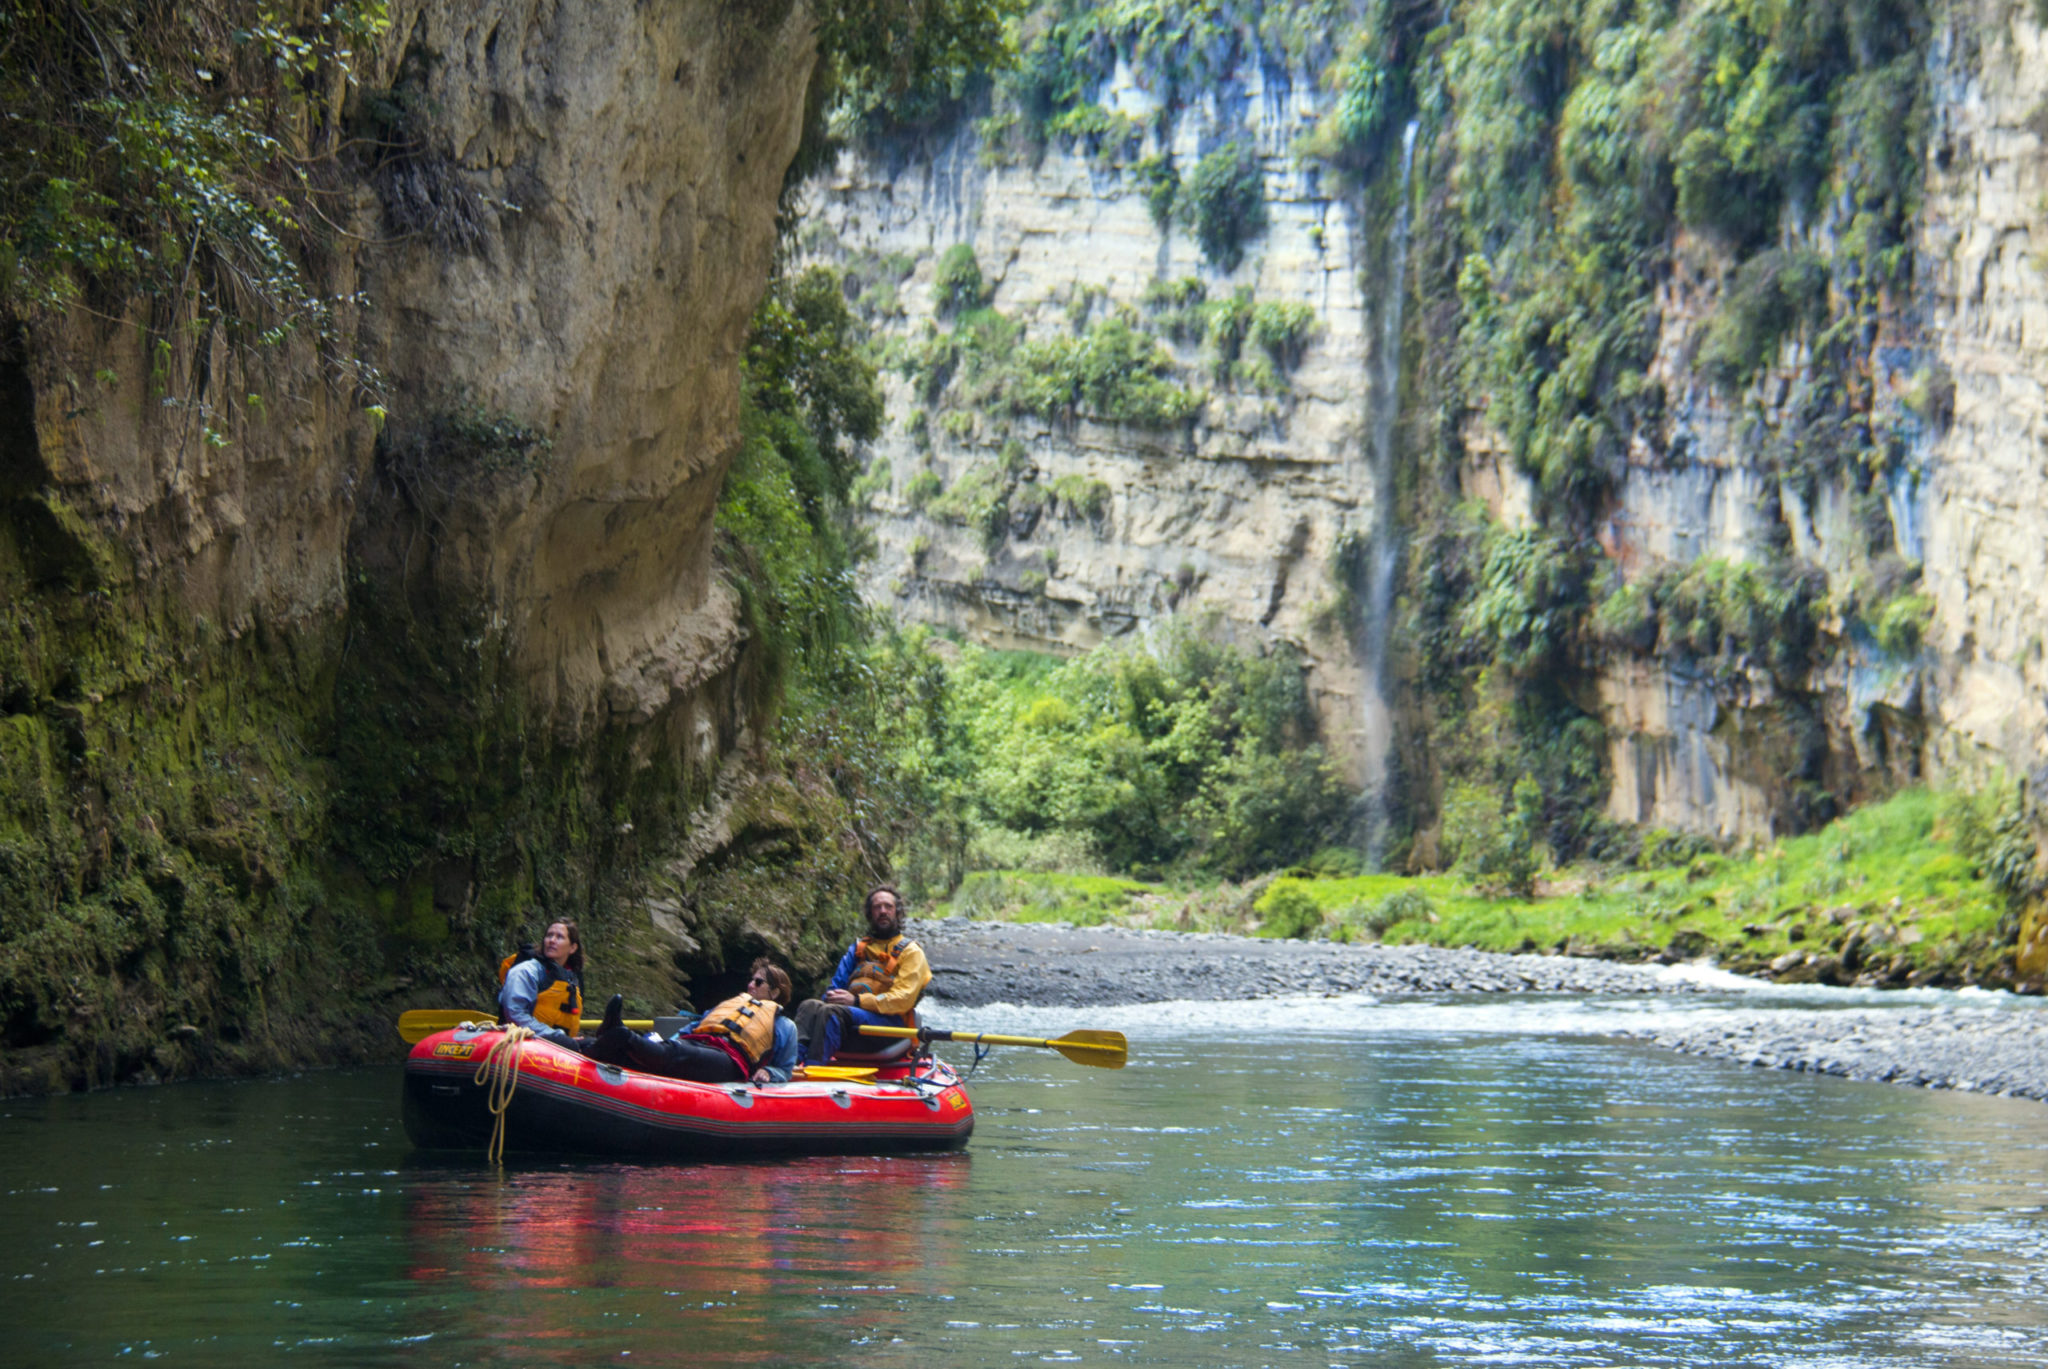 Full Day Scenic Rafting on the Rangitikei River in New Zealand